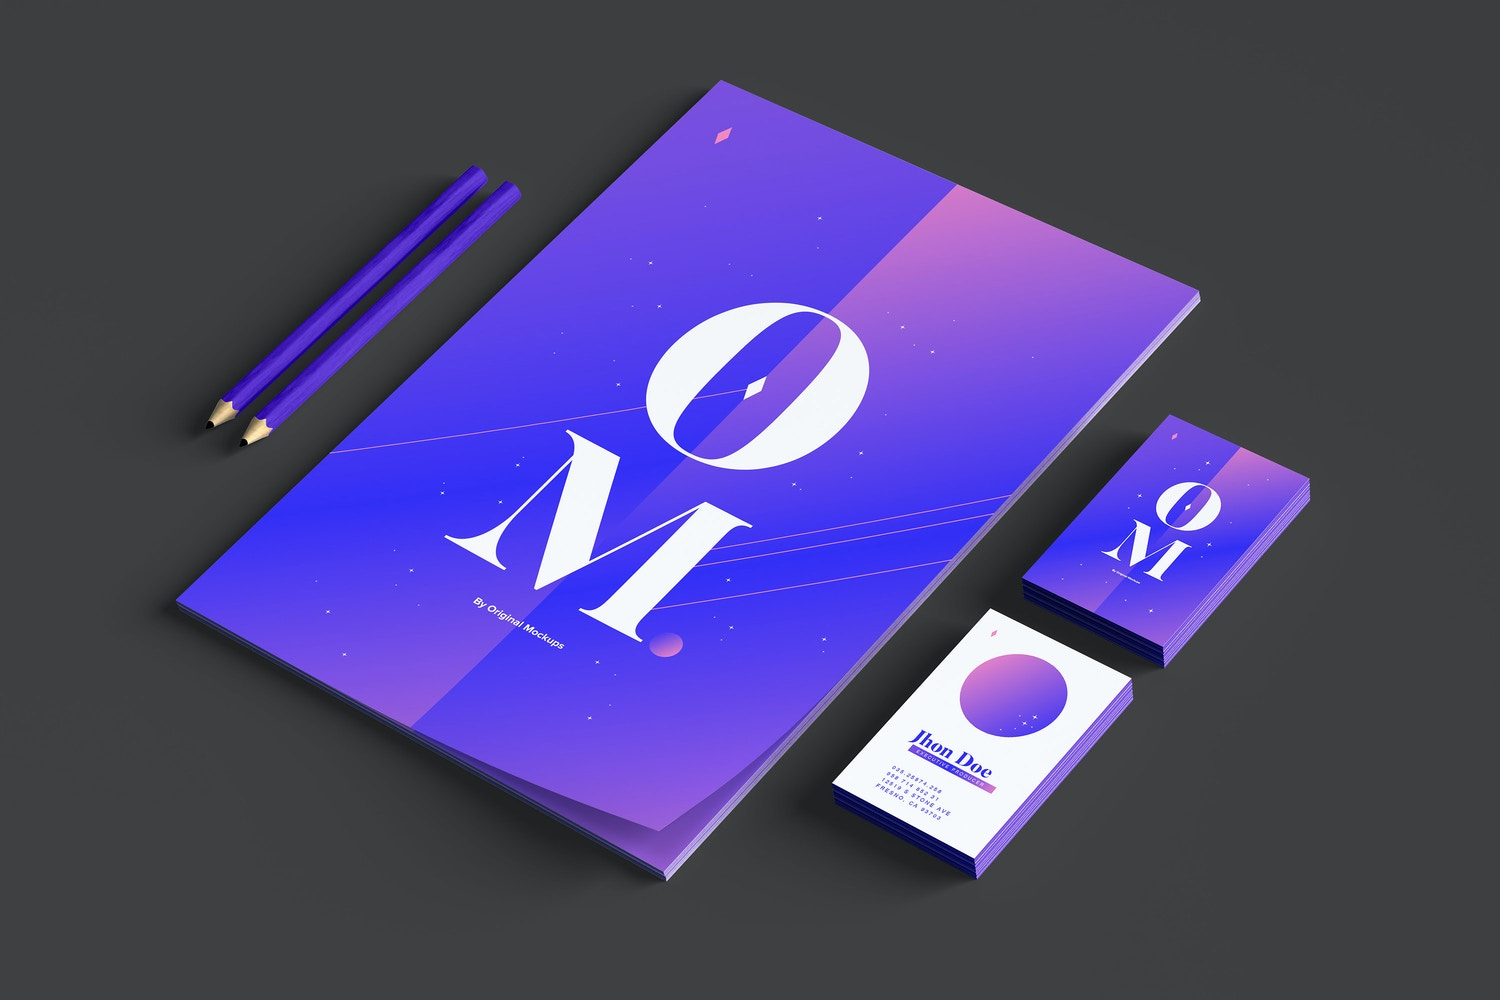 You can change the color of the thickness of the paper and also the color of the pencils, in this way you can create more realistic presentations.